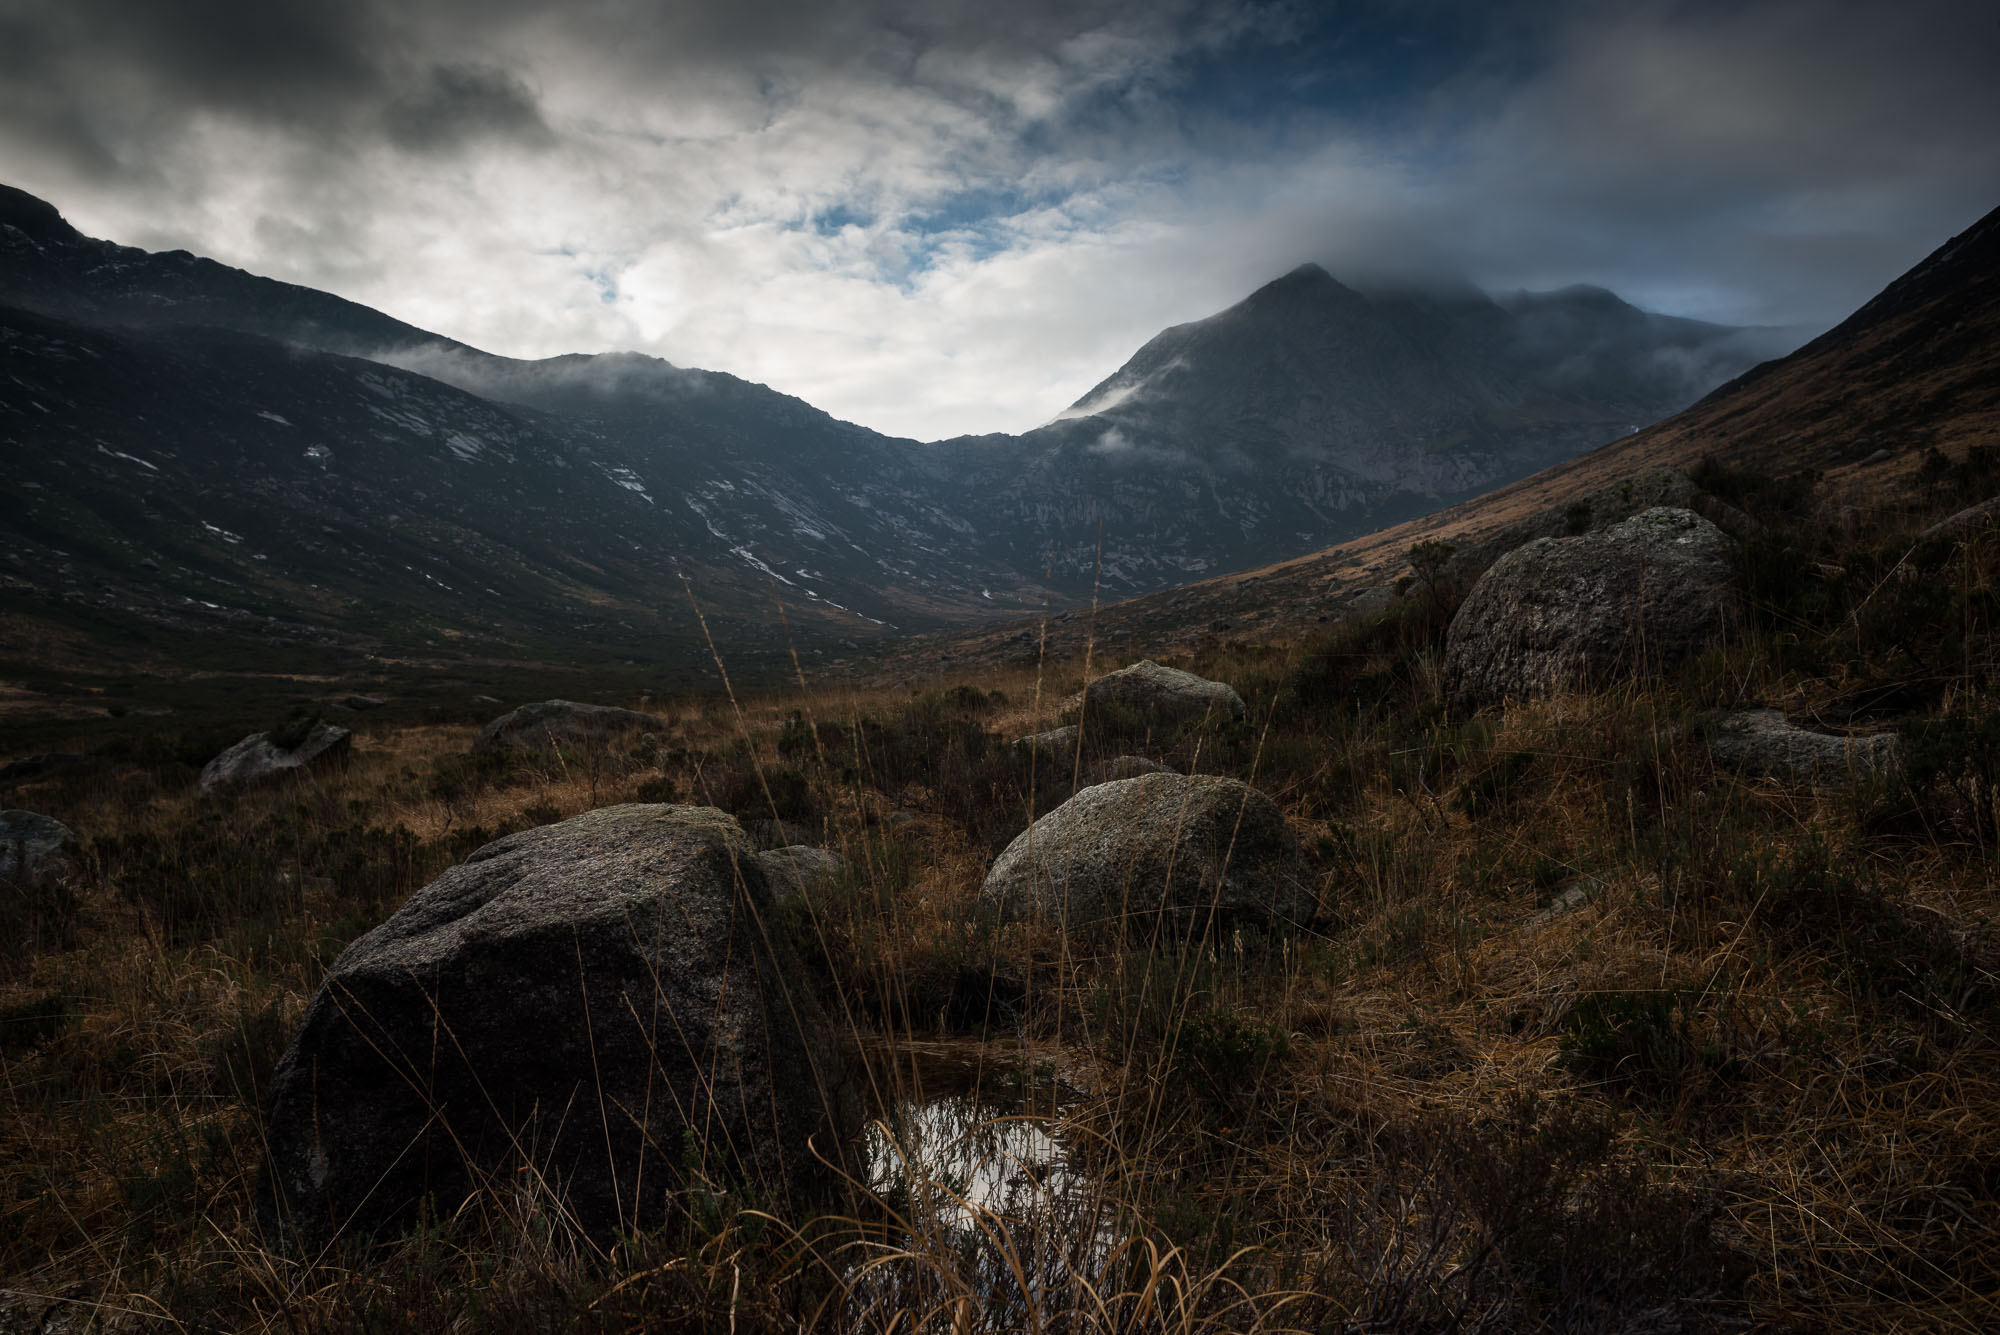 Glen Sannox with boulders